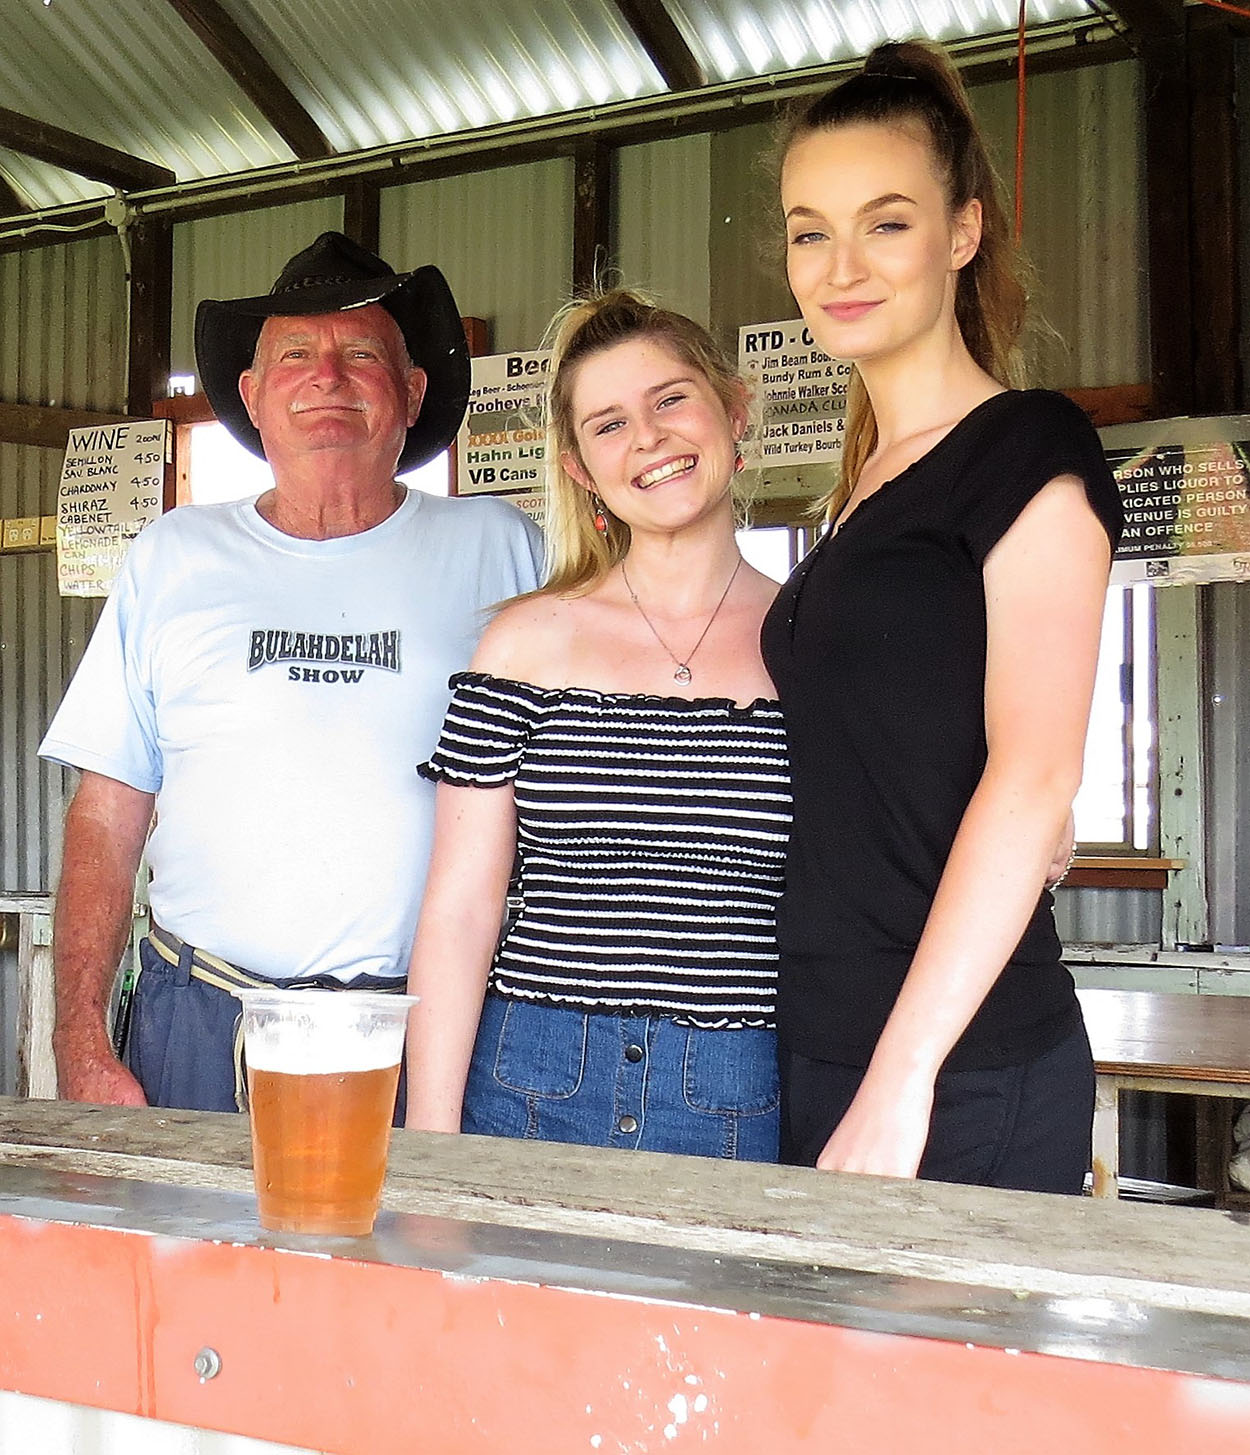 RENOVATED BAR SHED: Andrew Moncrieff, Chloe Shultz and Hannah Rietveld